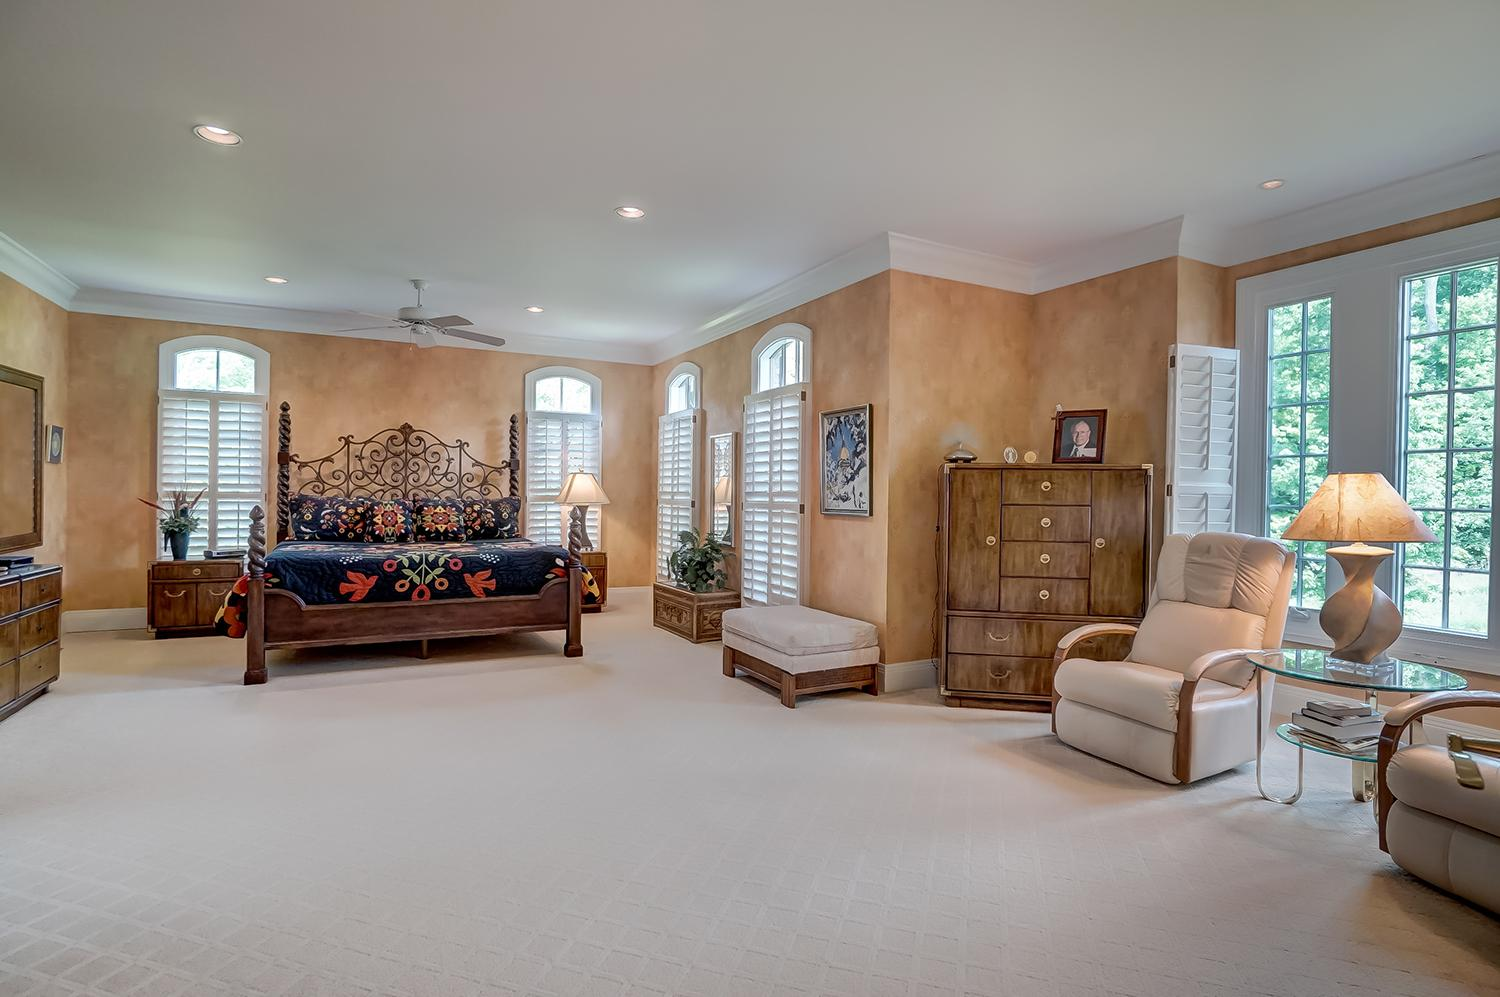 The main first floor master suite has a cozy sitting area, built-in book cases and a fireplace. A thoughtful combination of arched windows, plantation shutters, and crown moldings are conservative, yet impressive. / Image: Wow Video Tours // Published: 6.8.18